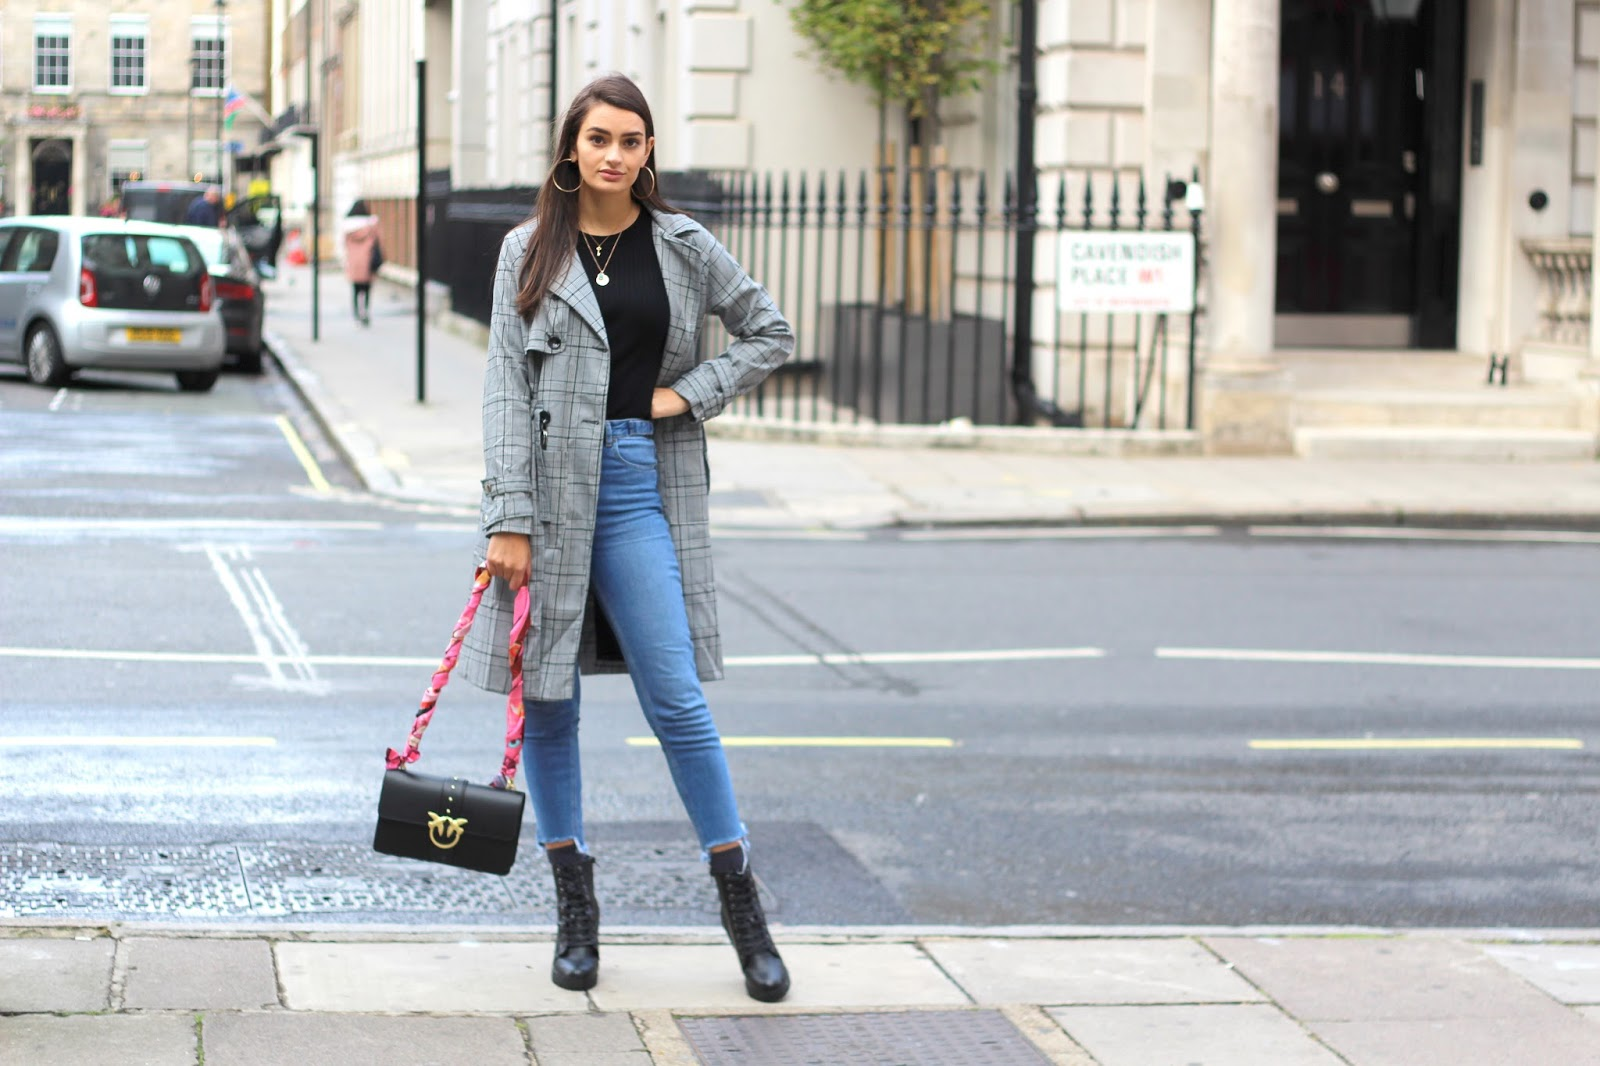 fashion blogger peexo autumn personal style